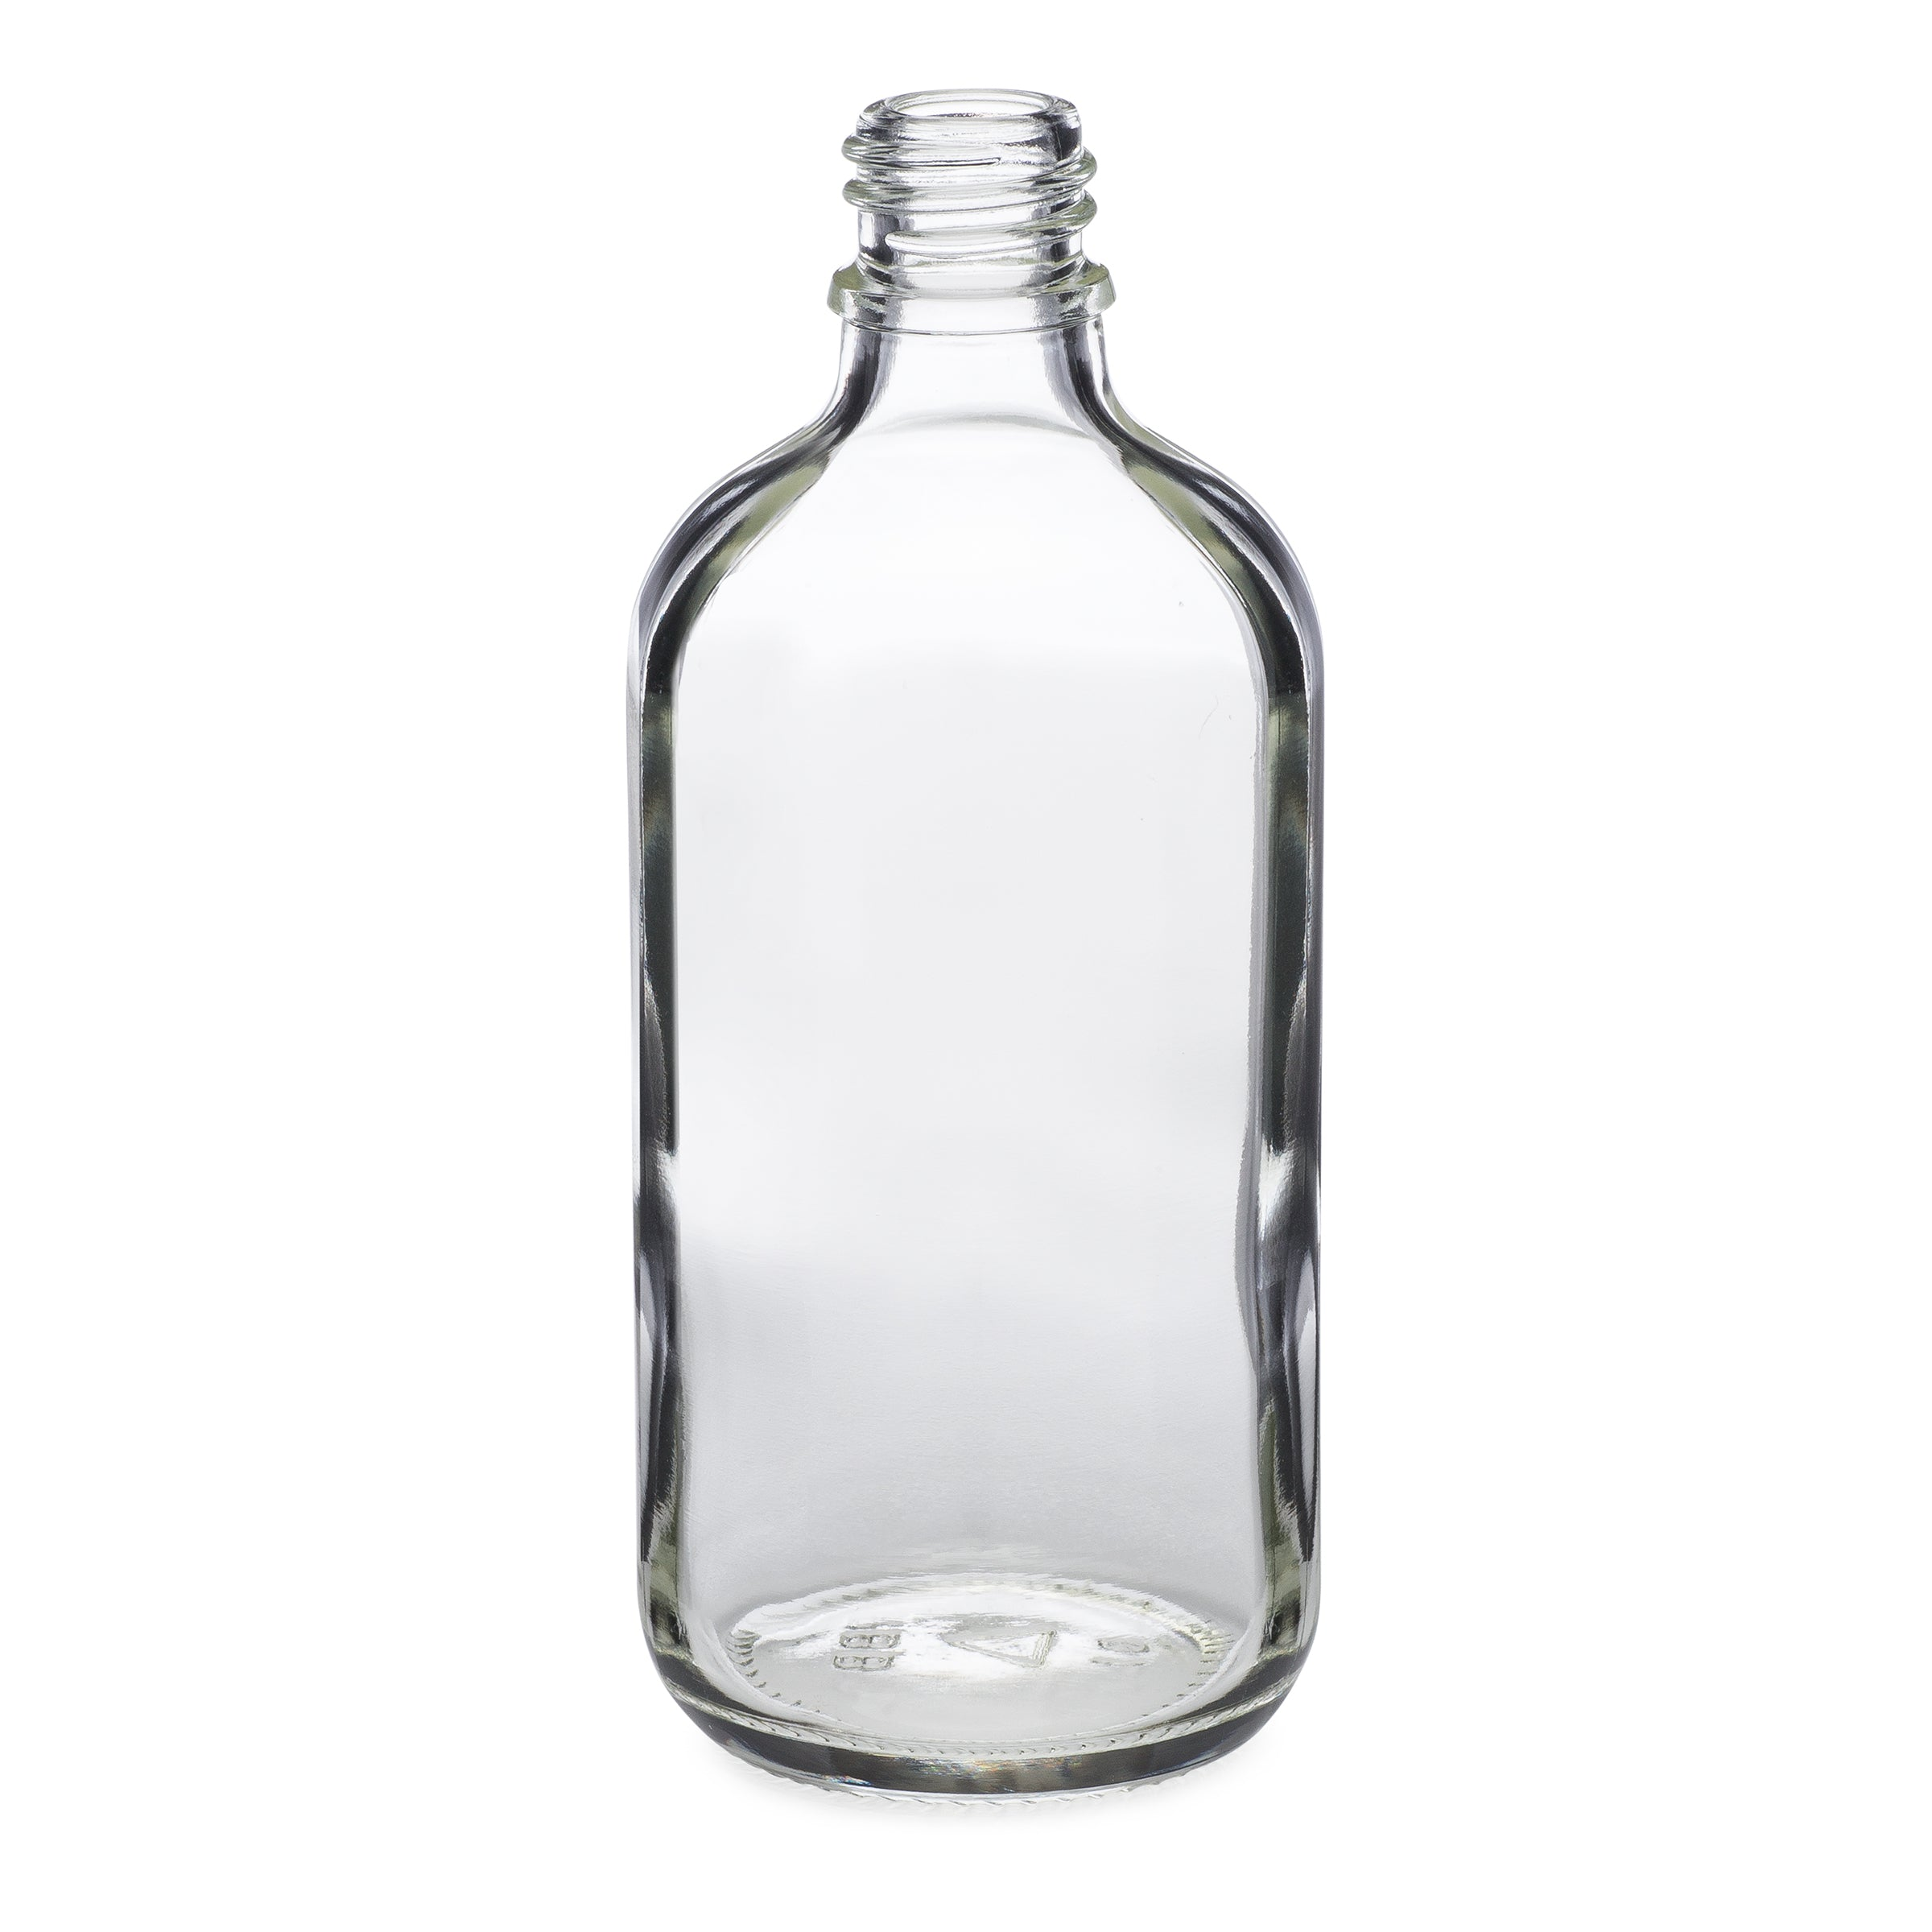 120ml/4oz Flint Dropper Bottle